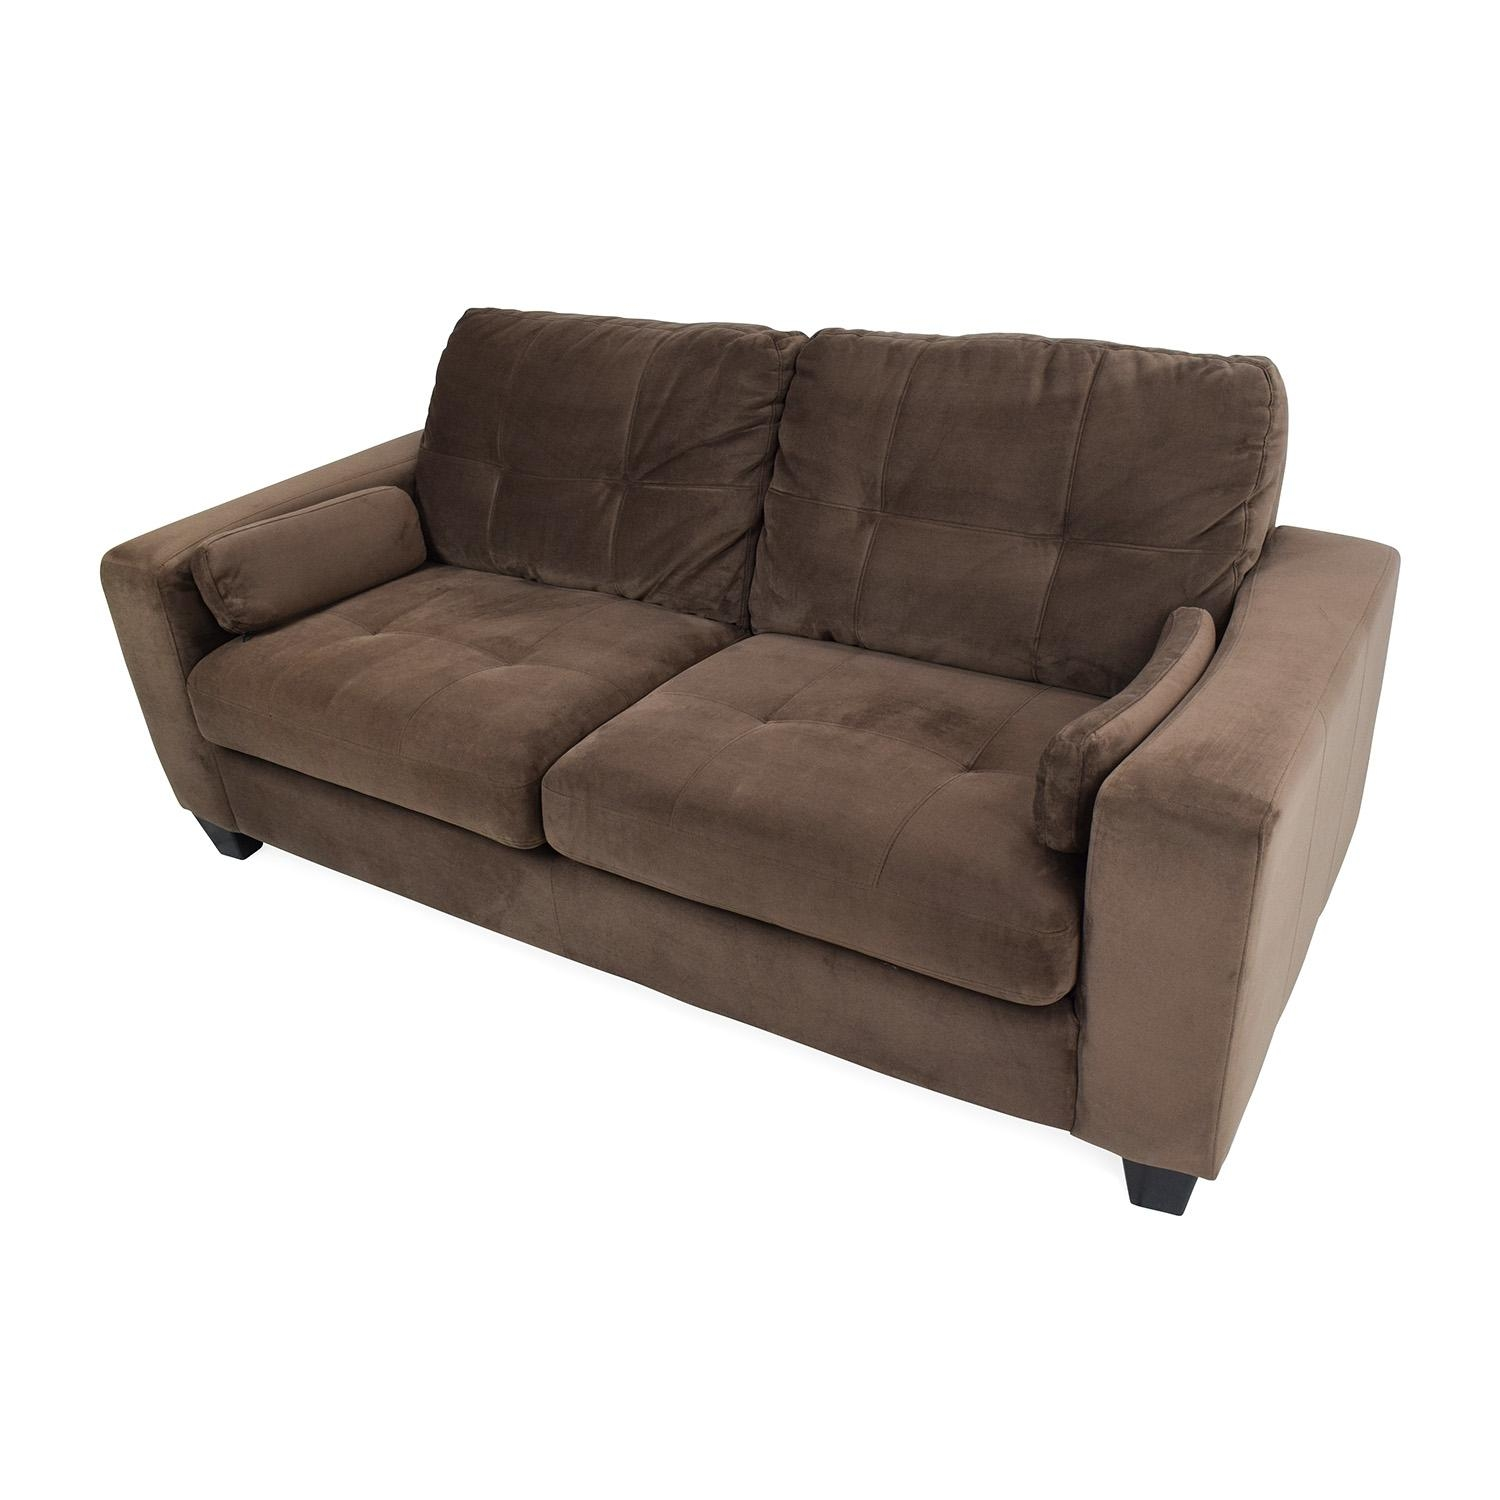 56% Off - Jennifer Convertibles Jennifer Convertibles Full Size with Jennifer Sofas